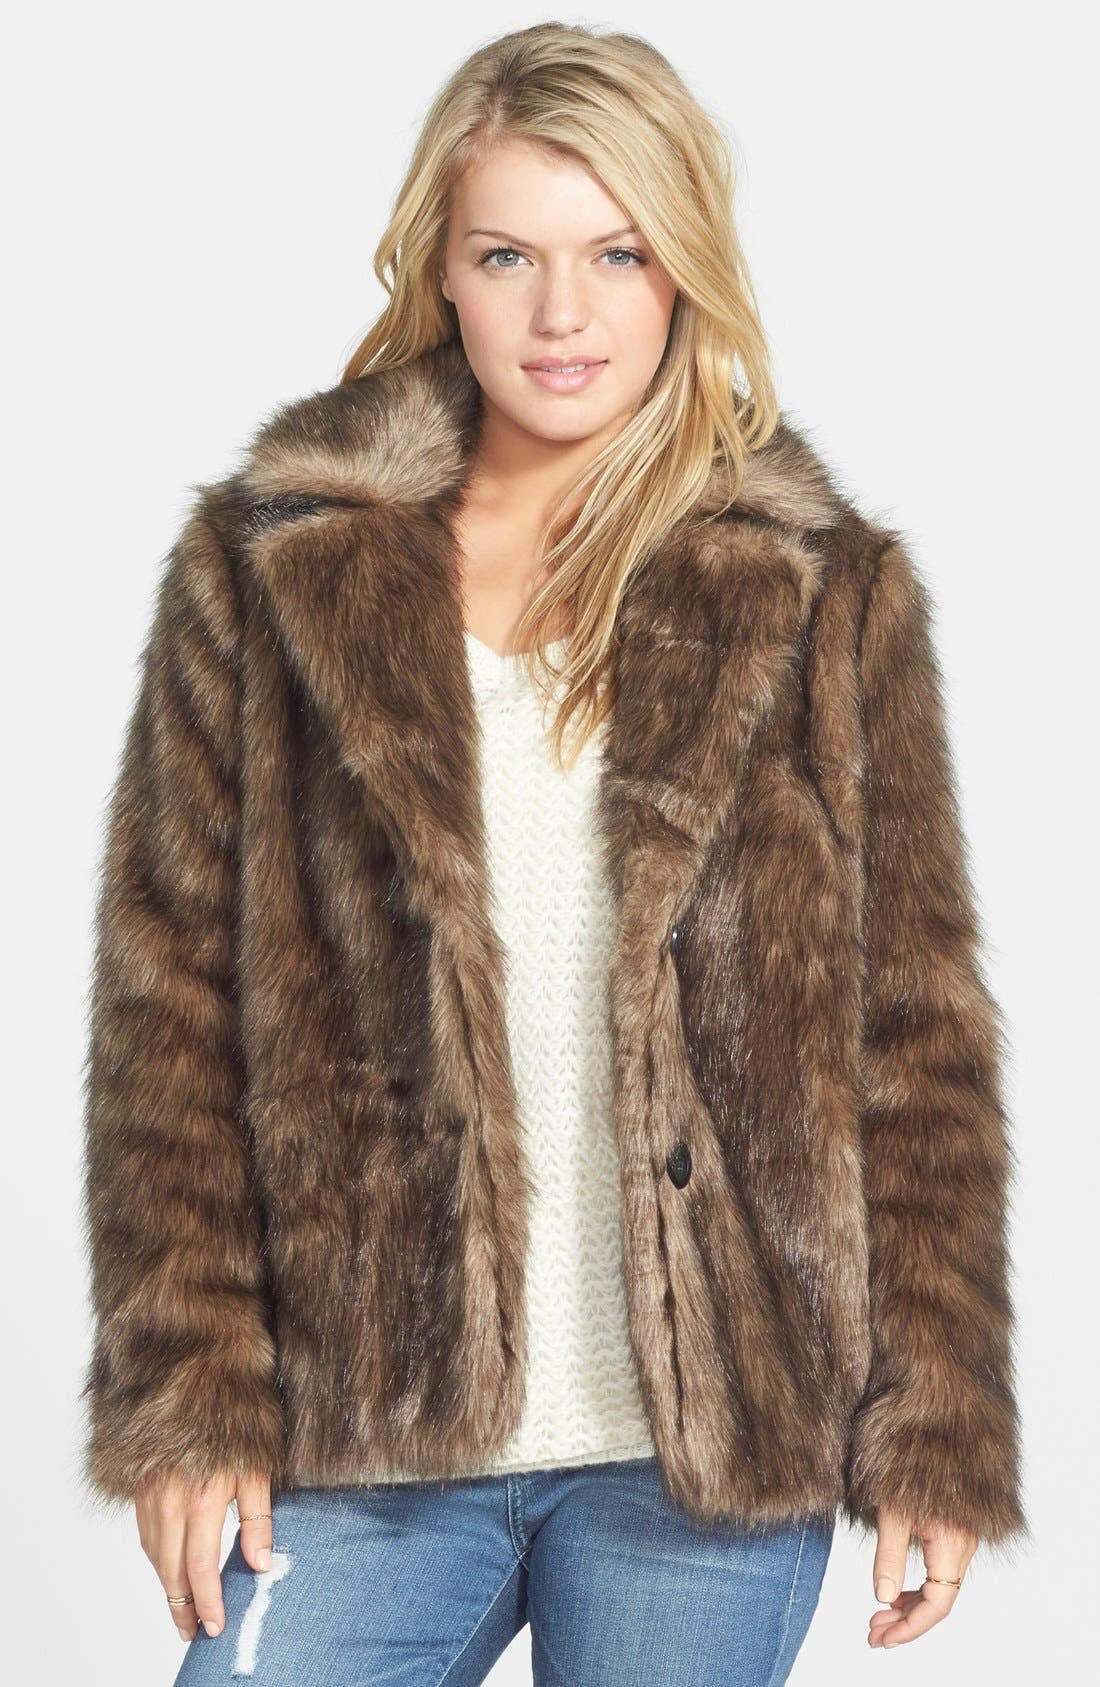 Alternate Image 1 Selected - Frenchi Faux Fur Jacket (Juniors)